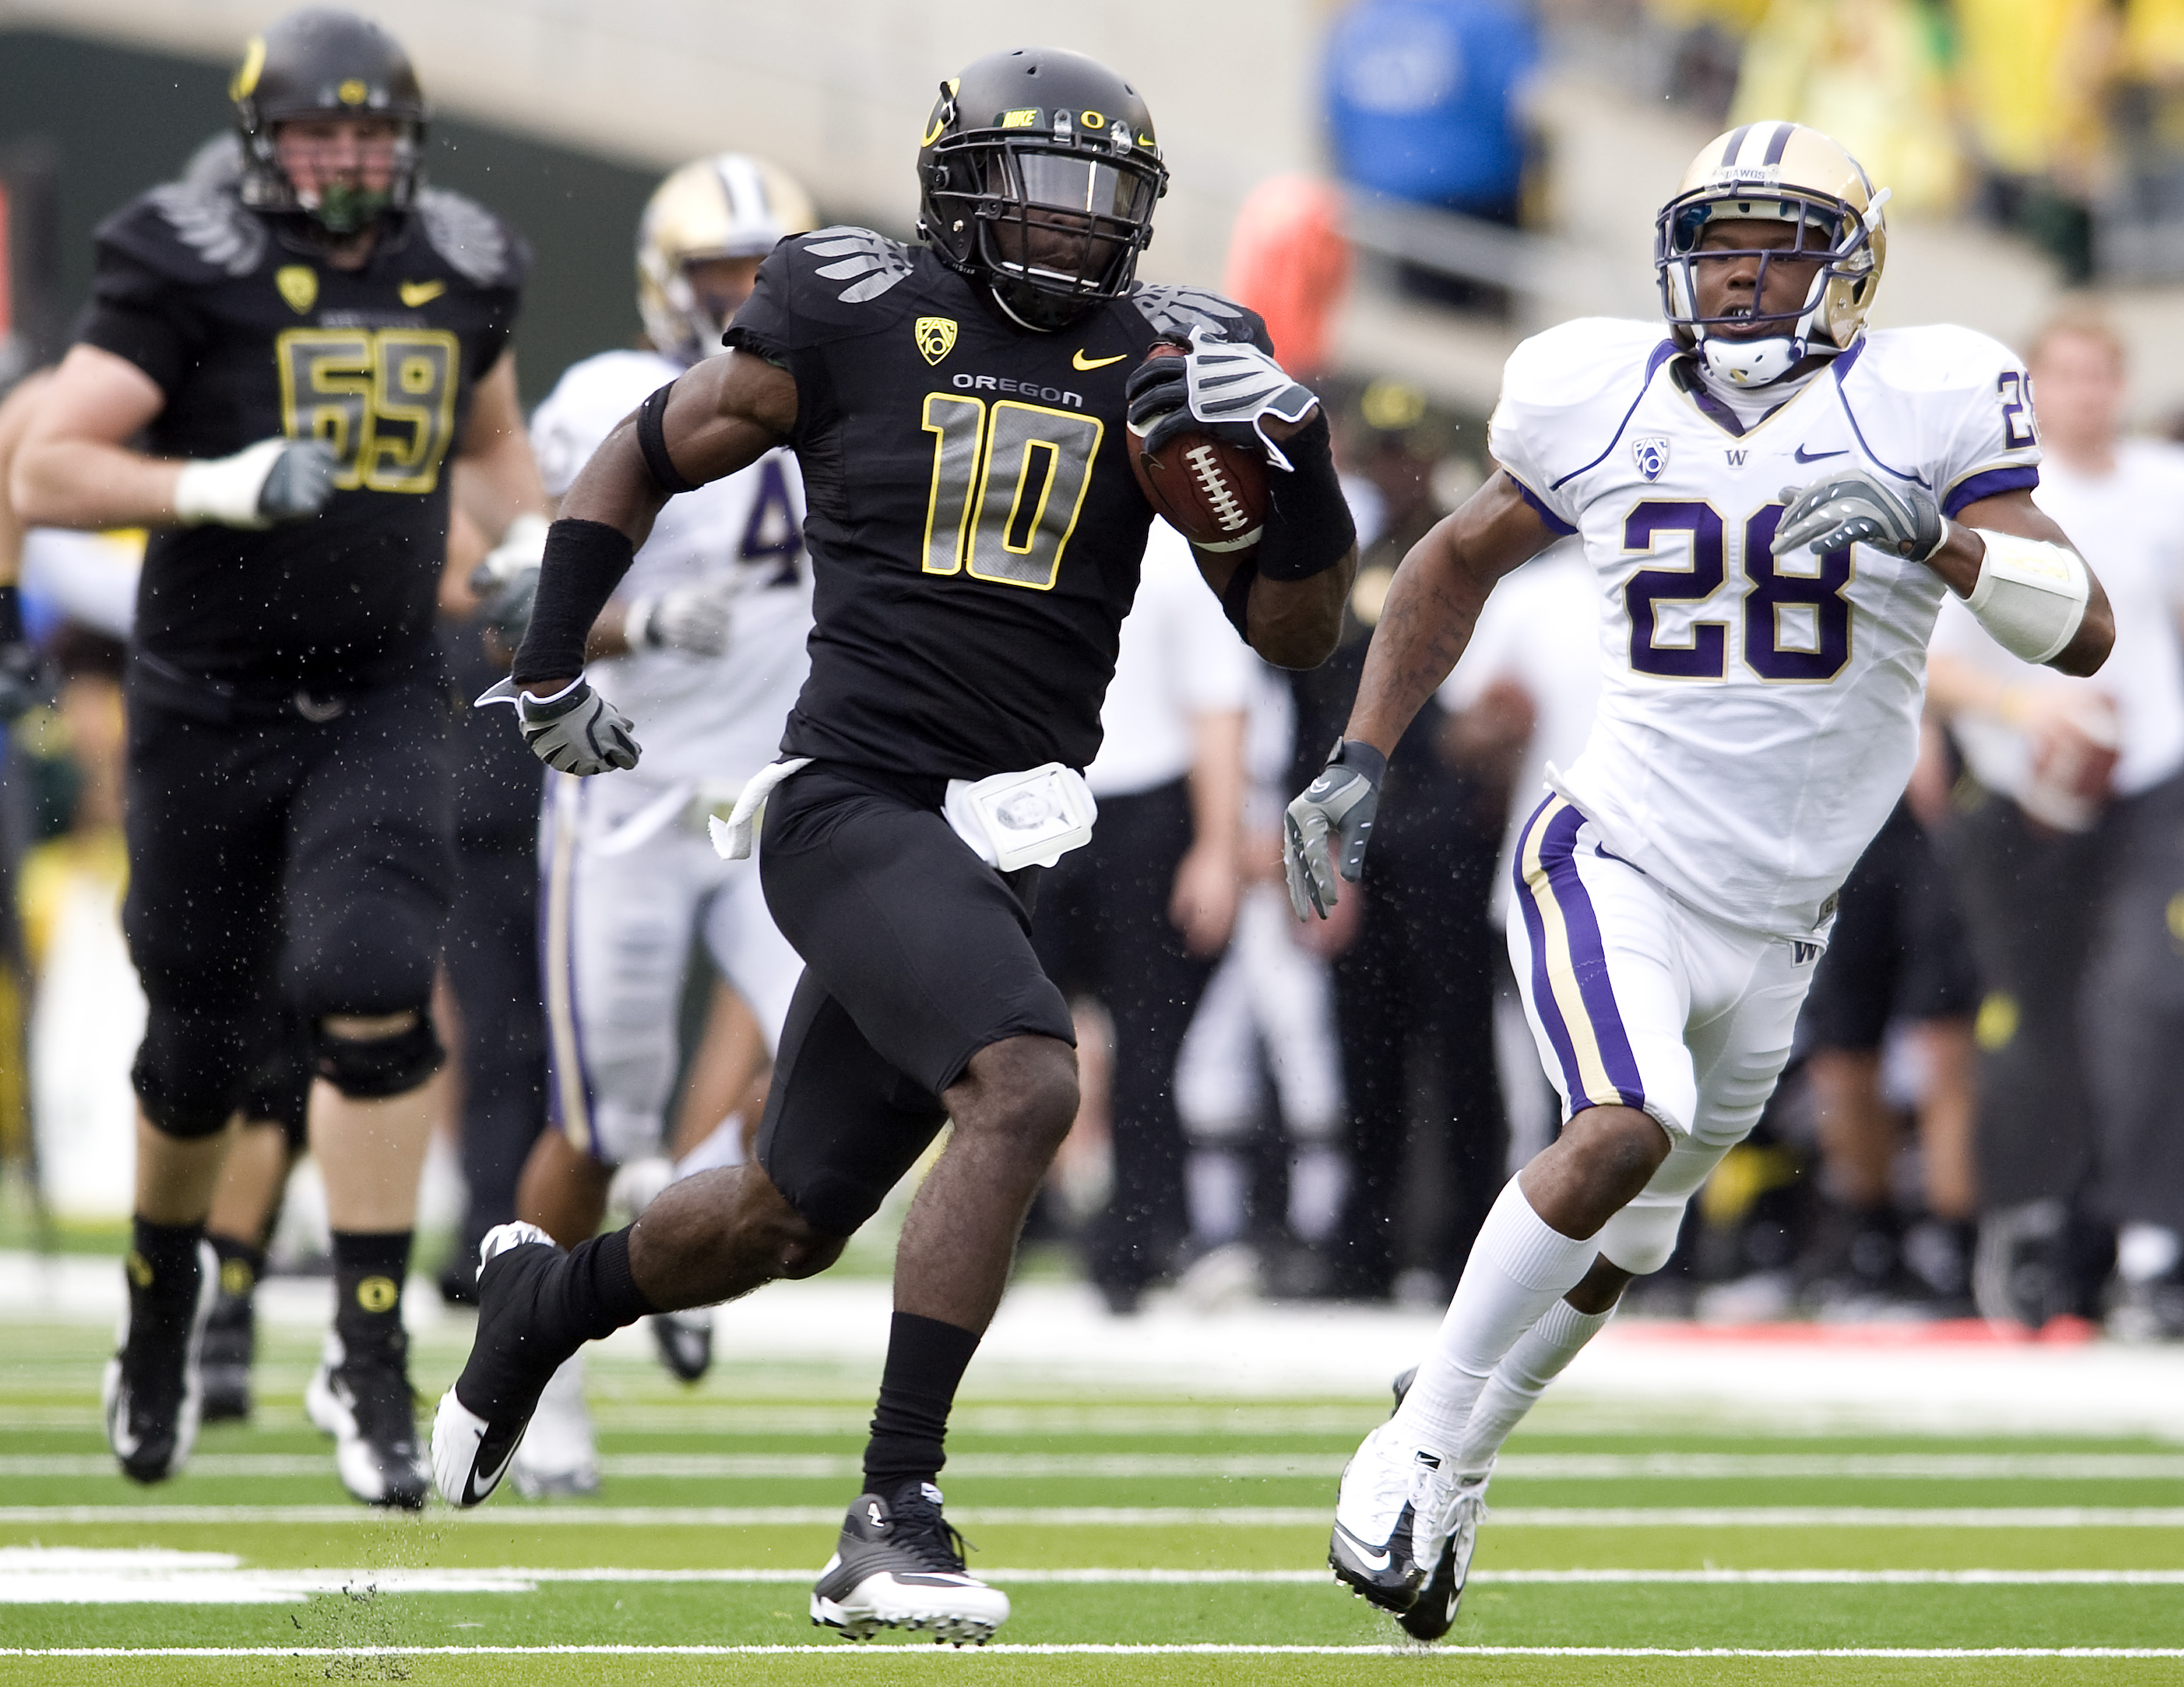 EUGENE, OR - NOVEMBER 06: Wide receiver D.J. Davis #10 of the Oregon Ducks runs after making a reception as cornerback Quinton Richardson #28 of the Washington Huskies gives chase in the third quarter of the game at Autzen Stadium on November 6, 2010 in E